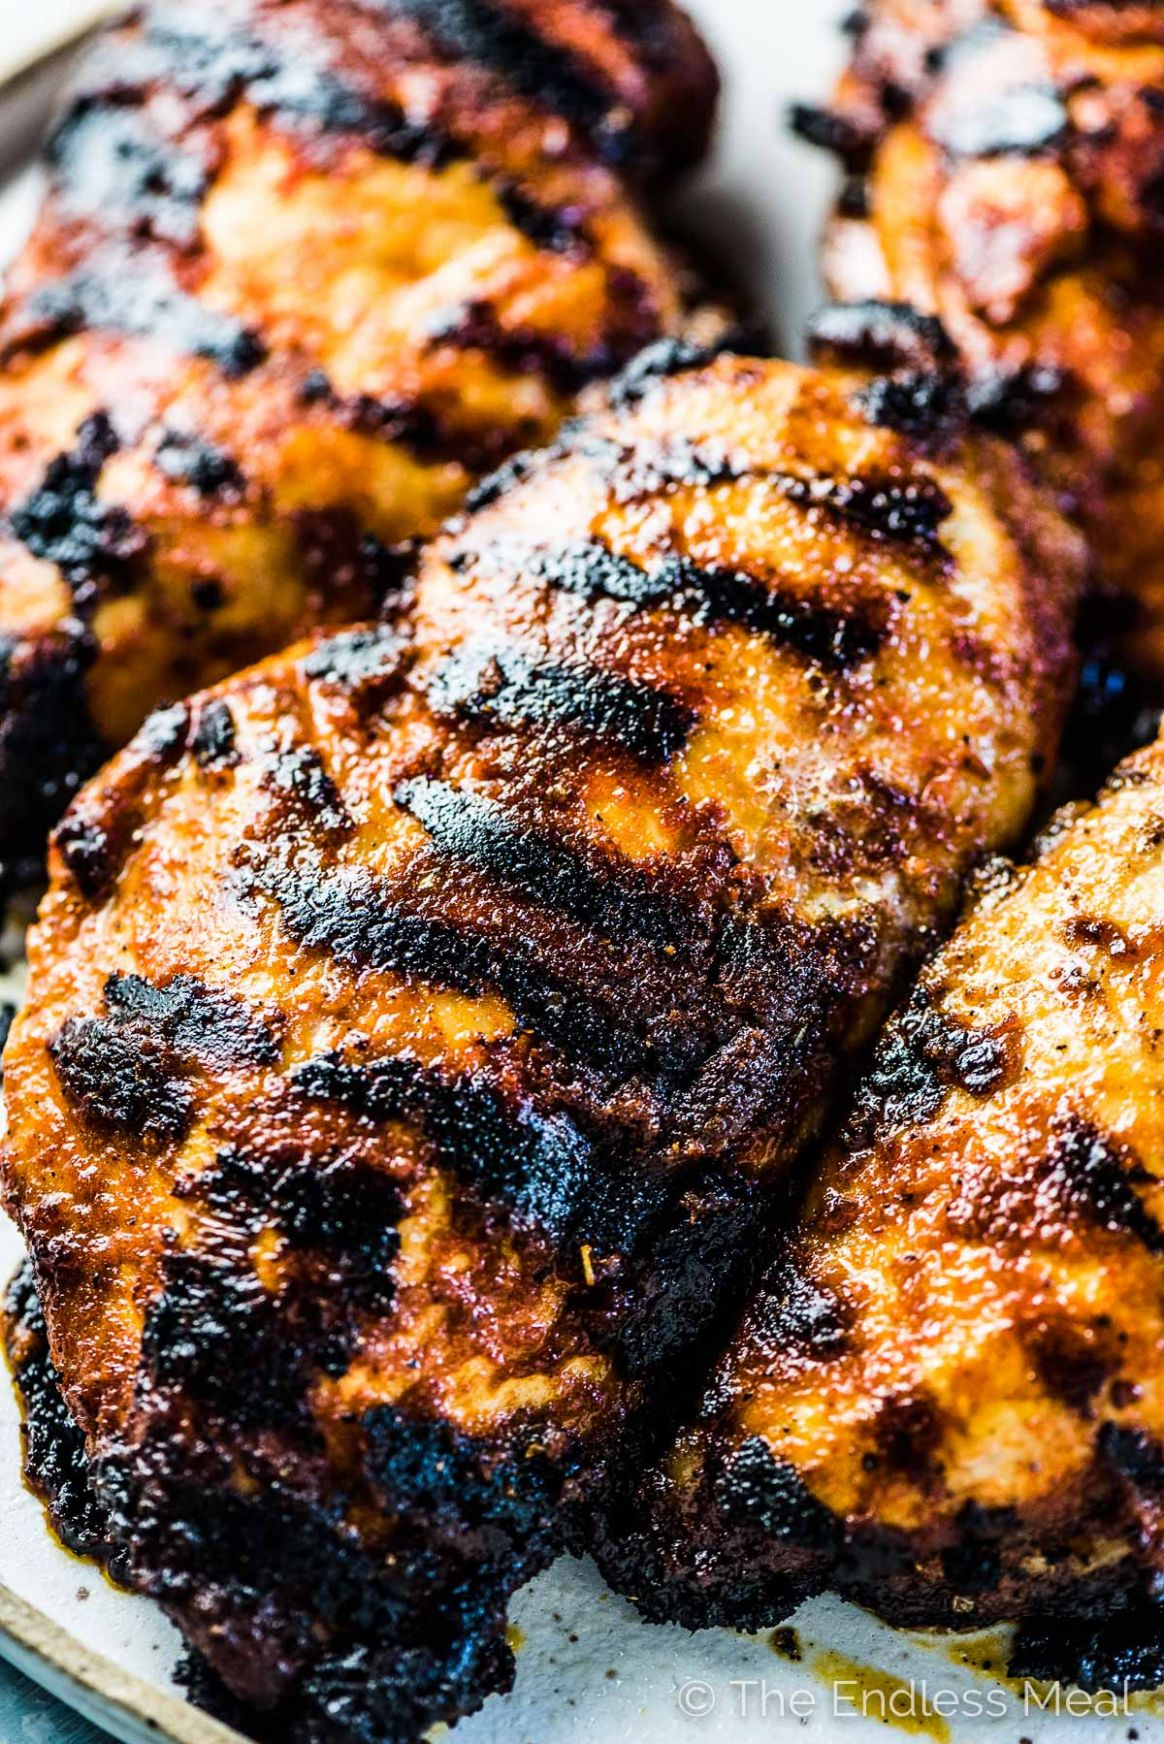 Grilled Chicken Breast - Recipes Chicken Breast On Grill